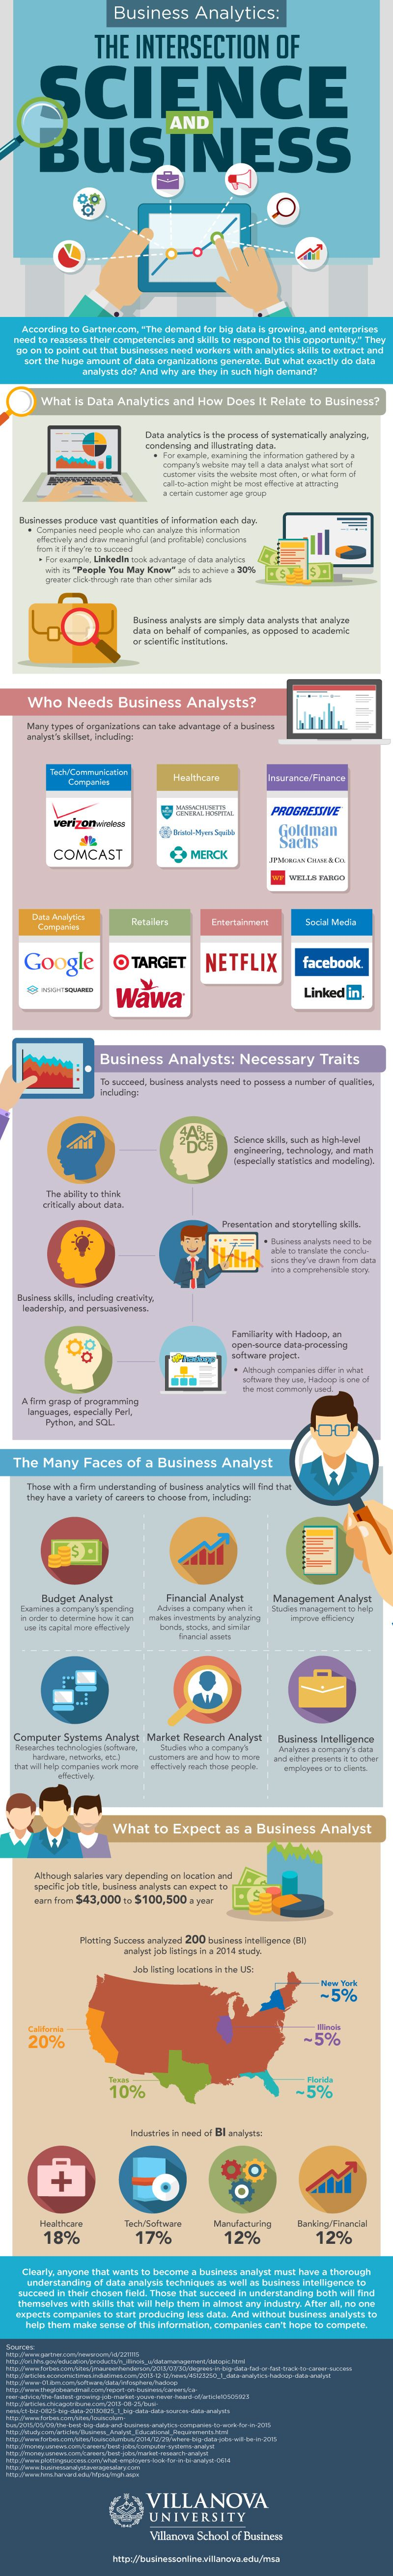 The Intersection of Science and Business #Infographic